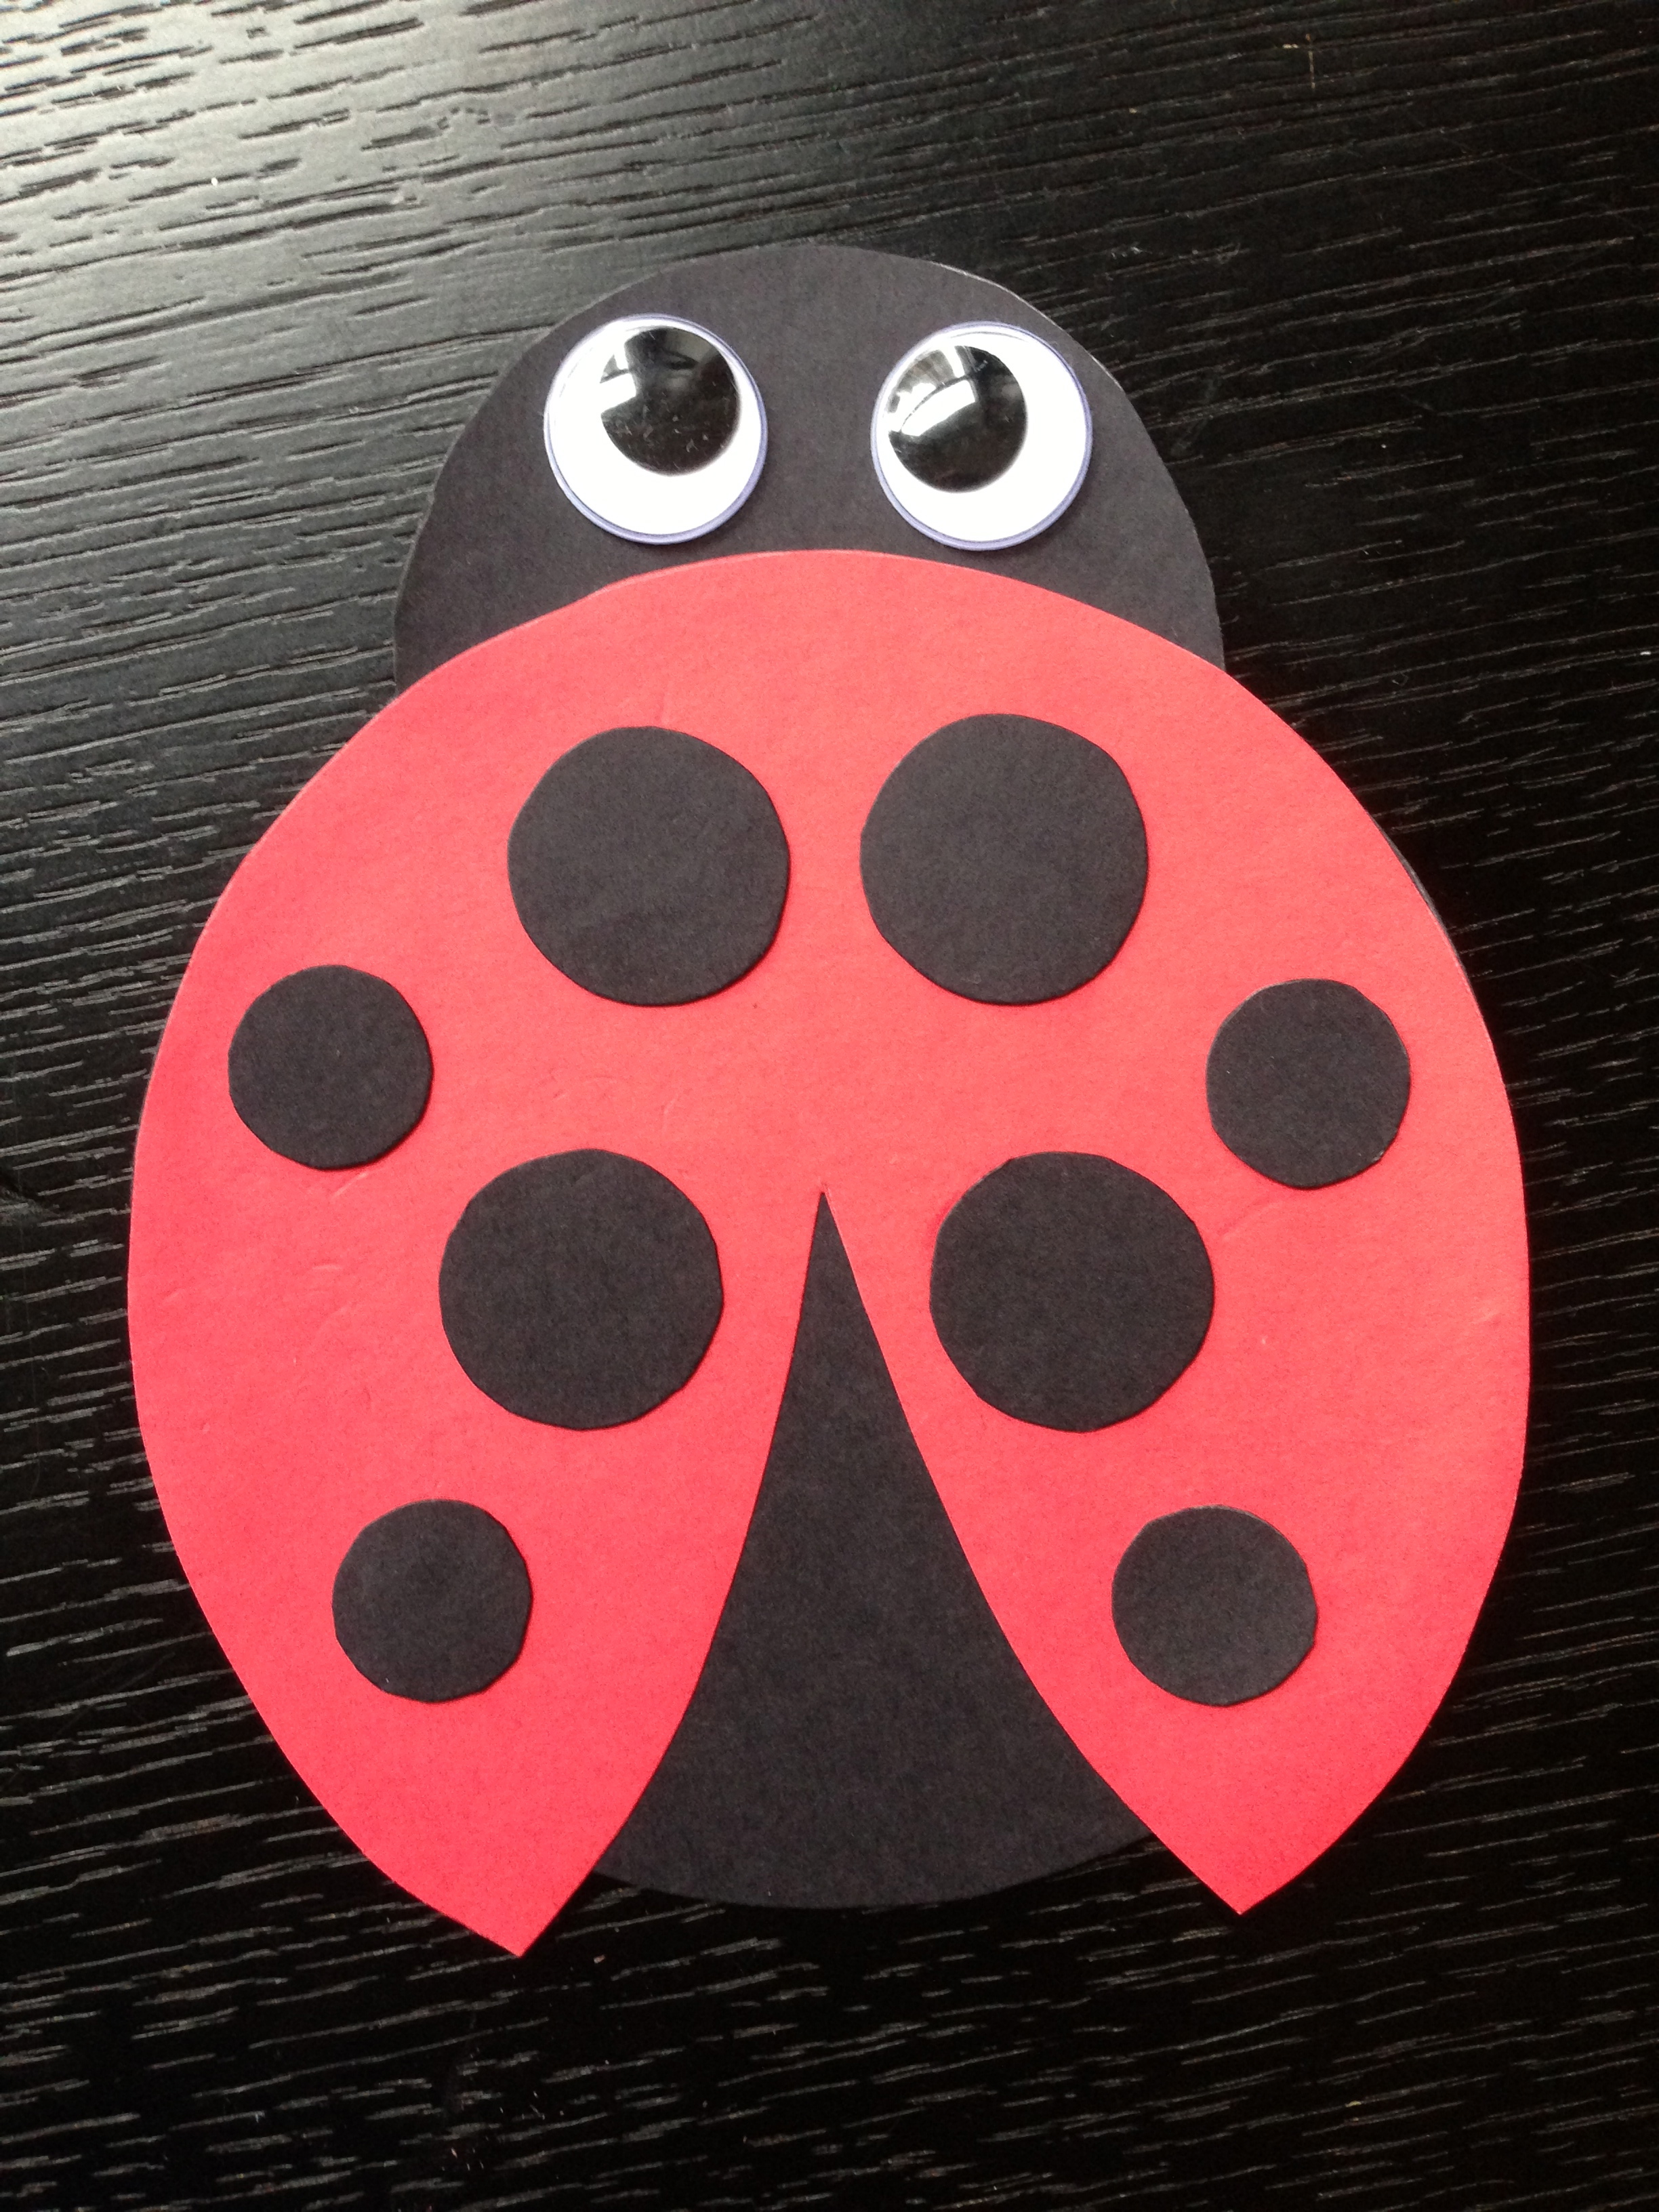 Diy ladybug invitation img3943 solutioingenieria Choice Image